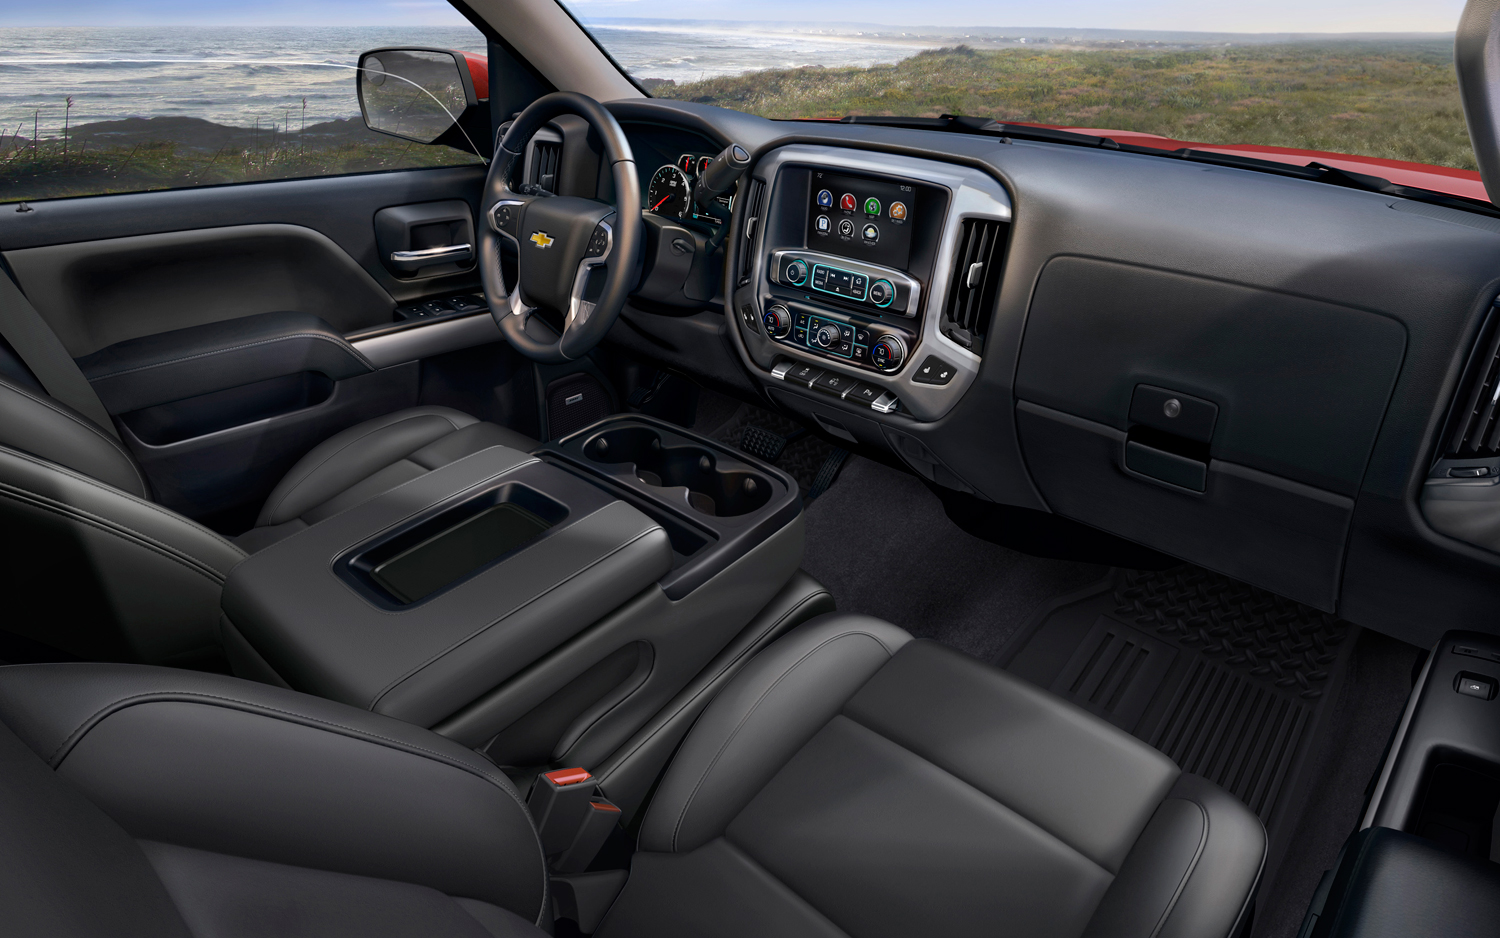 New 2014 Chevrolet Silverado Photos And Details Video